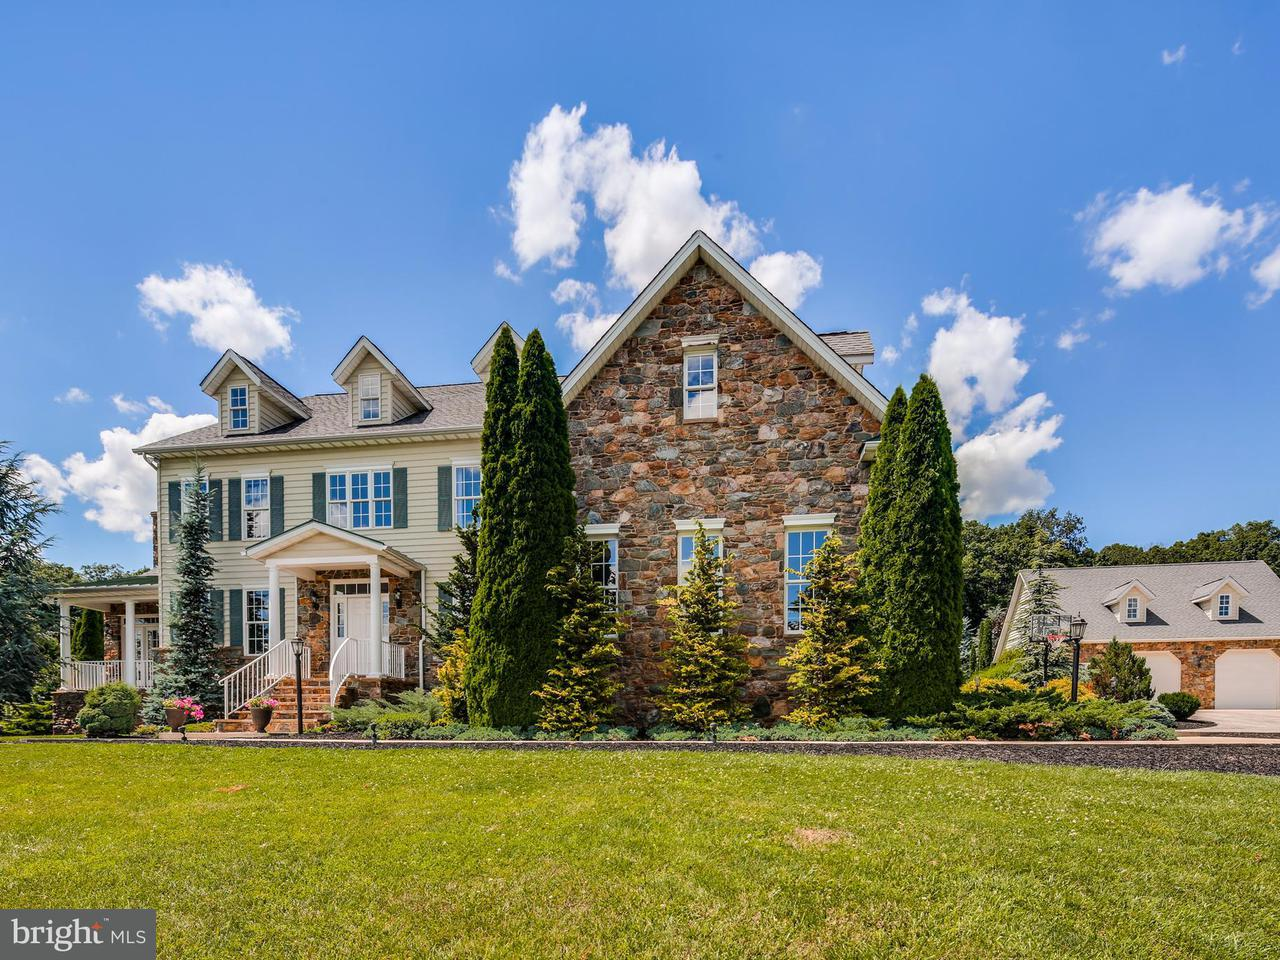 Single Family Home for Sale at 4902 WENTZ Road 4902 WENTZ Road Manchester, Maryland 21102 United States